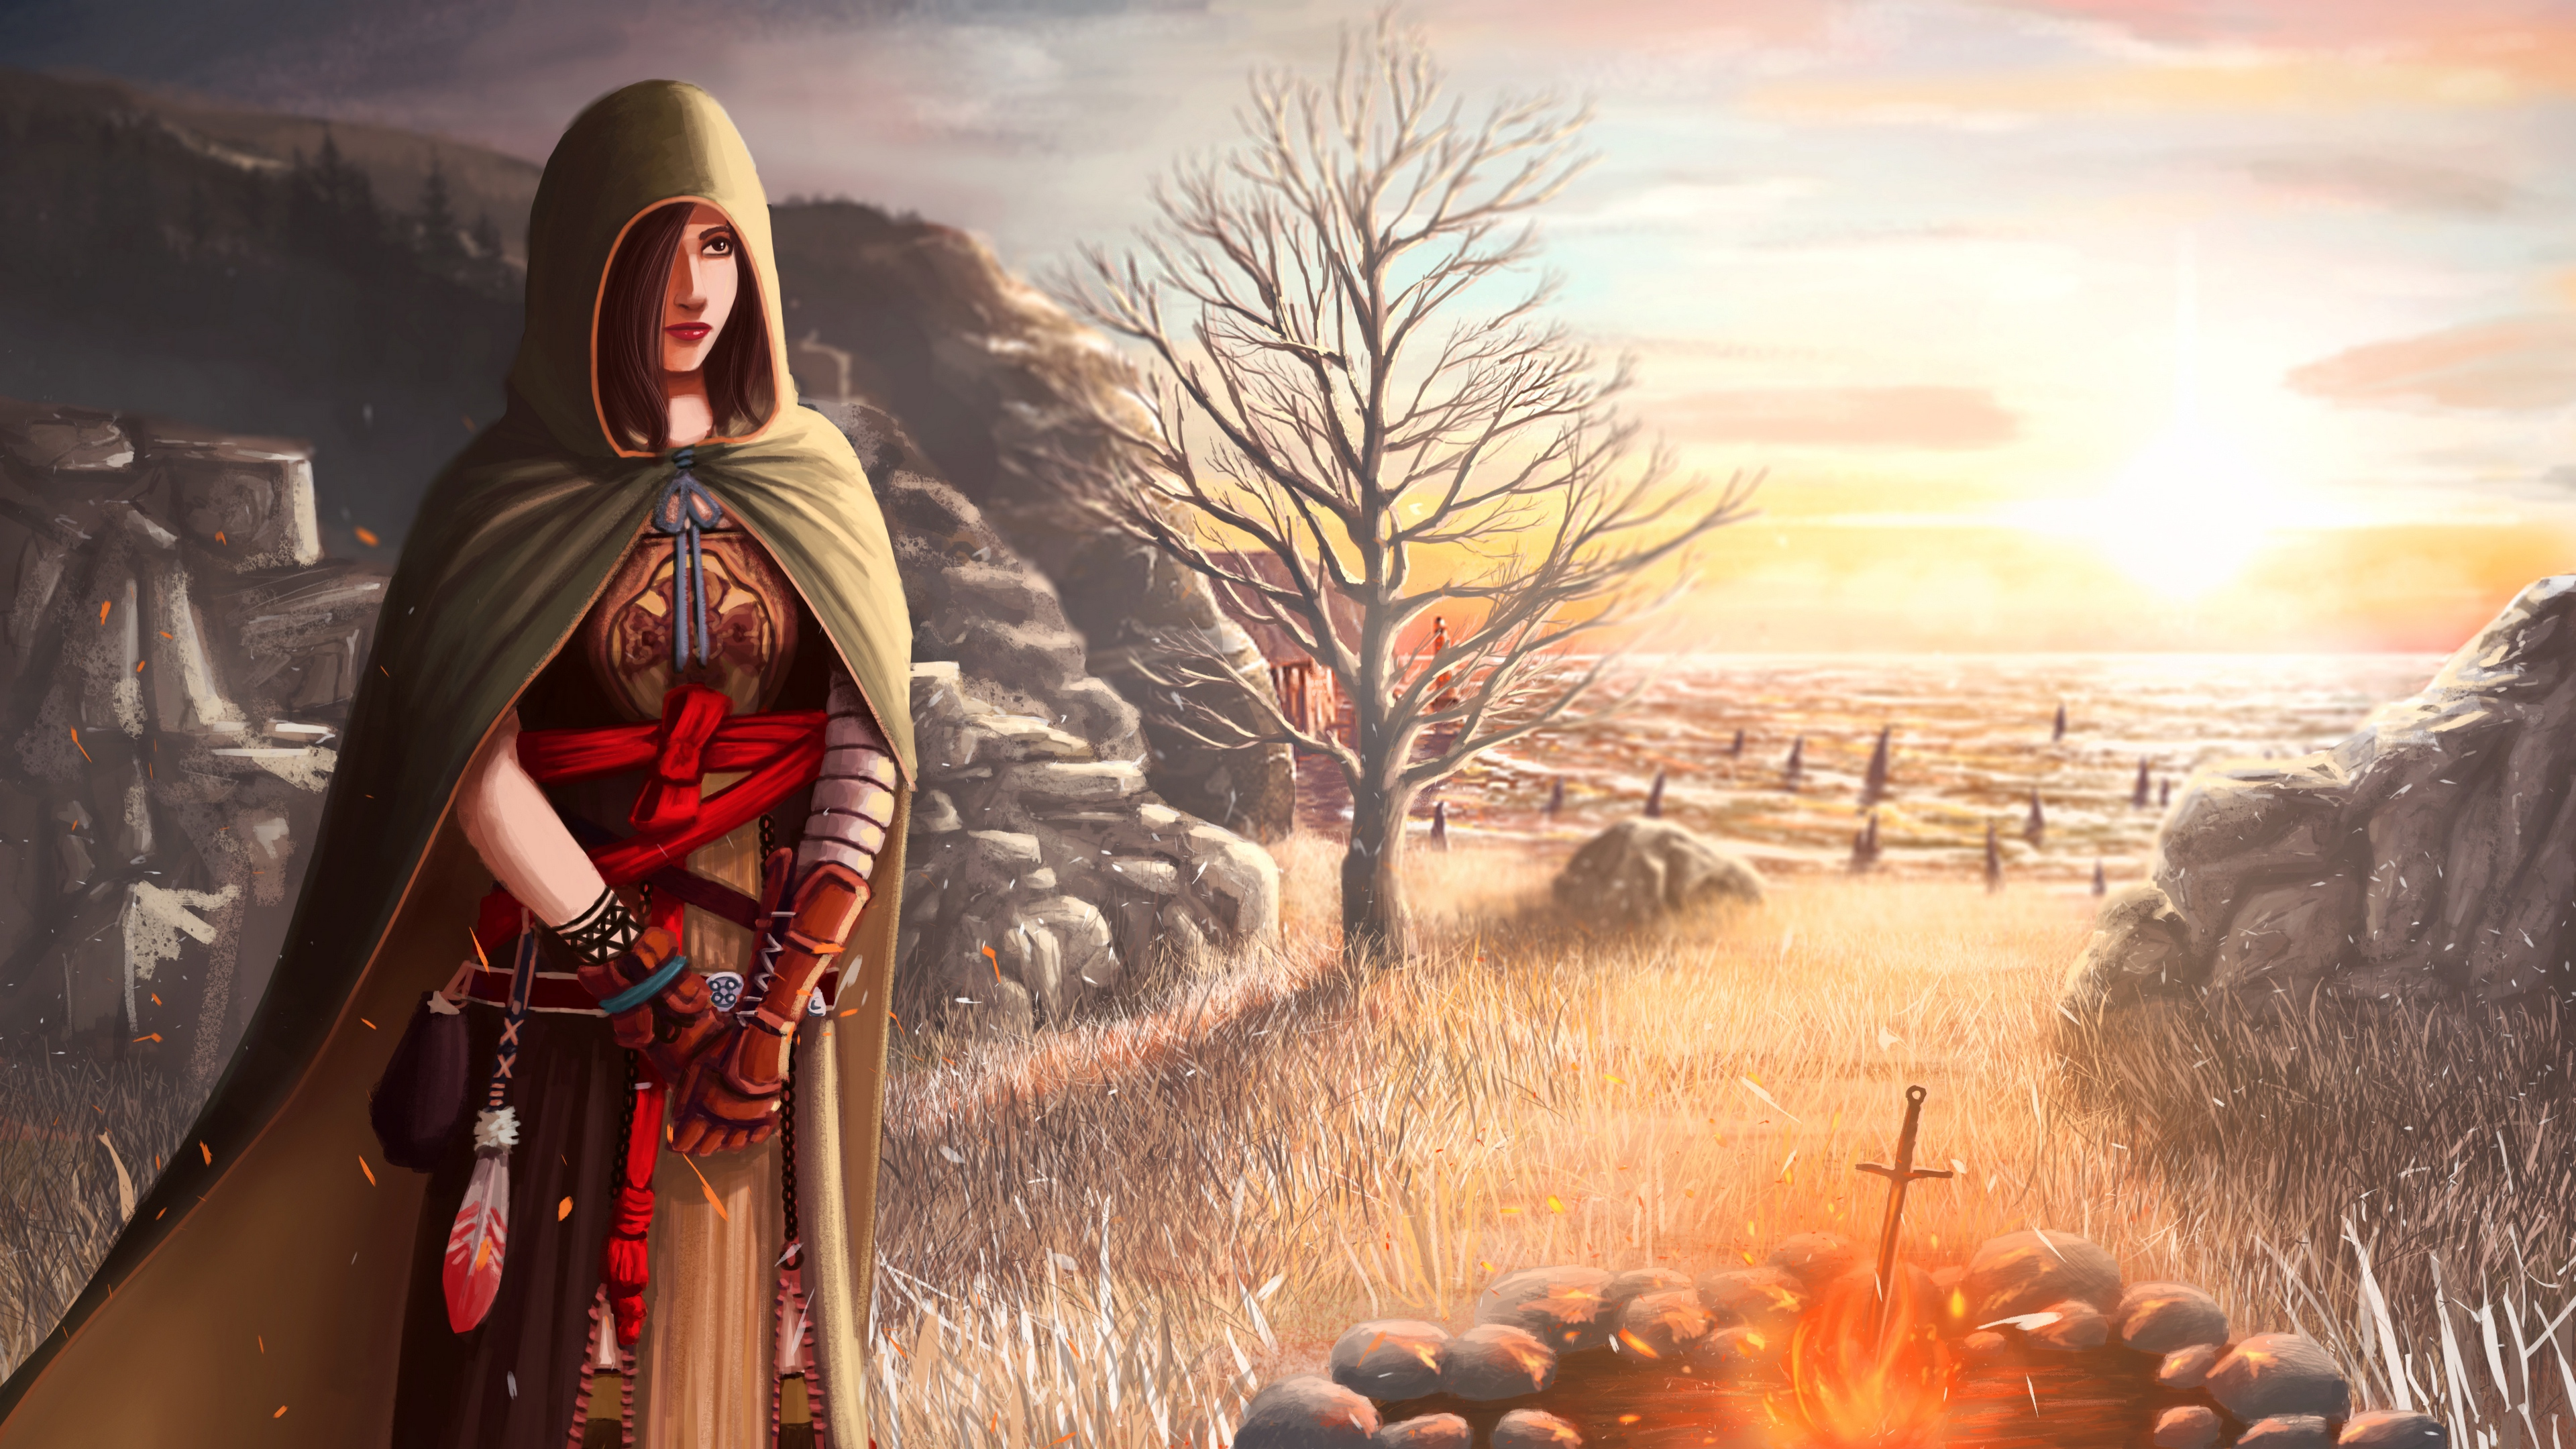 dark souls 2 shanalotte girl cape field 4k 1538944807 - dark souls 2, shanalotte, girl, cape, field 4k - shanalotte, Girl, dark souls 2